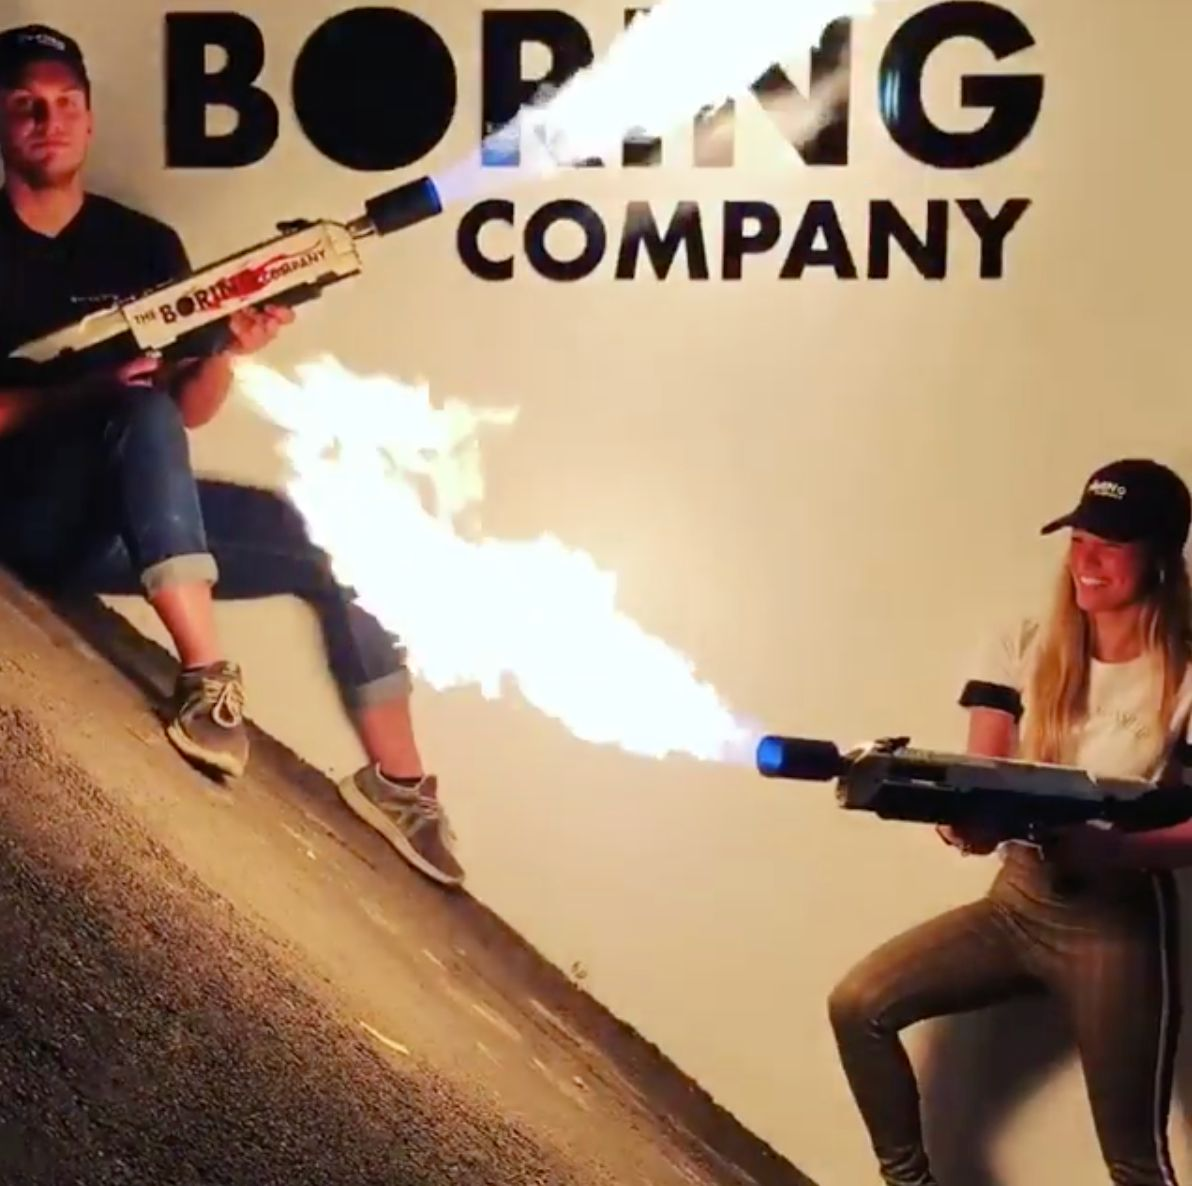 The Boring Company flamethrowers in action